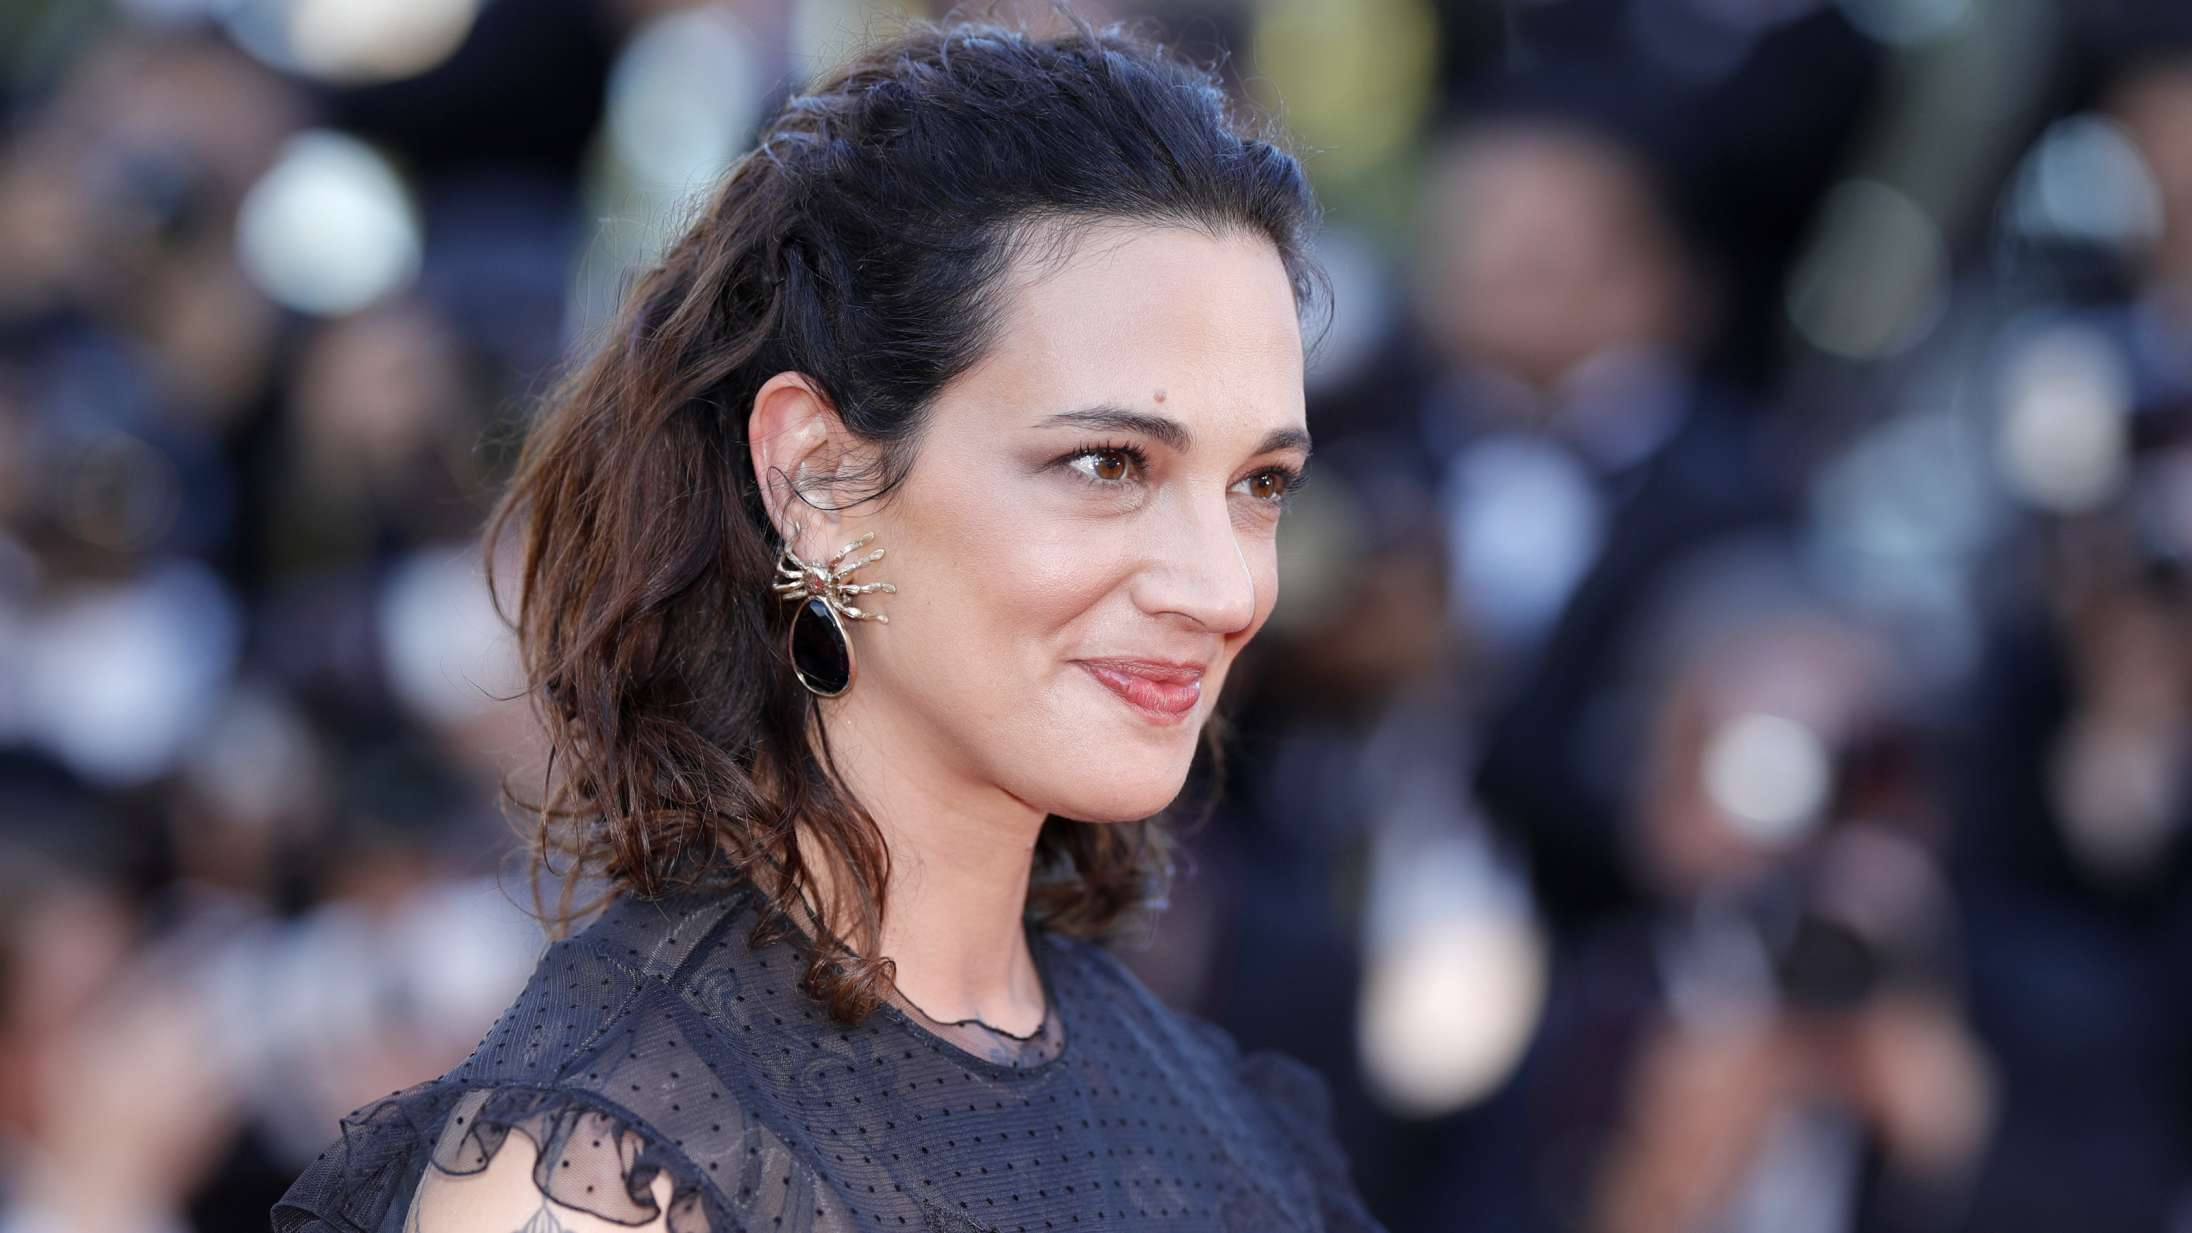 Asia Argento anklager 'The Fast and the Furious'-instruktør for seksuelt overgreb – det samme gør hans datter